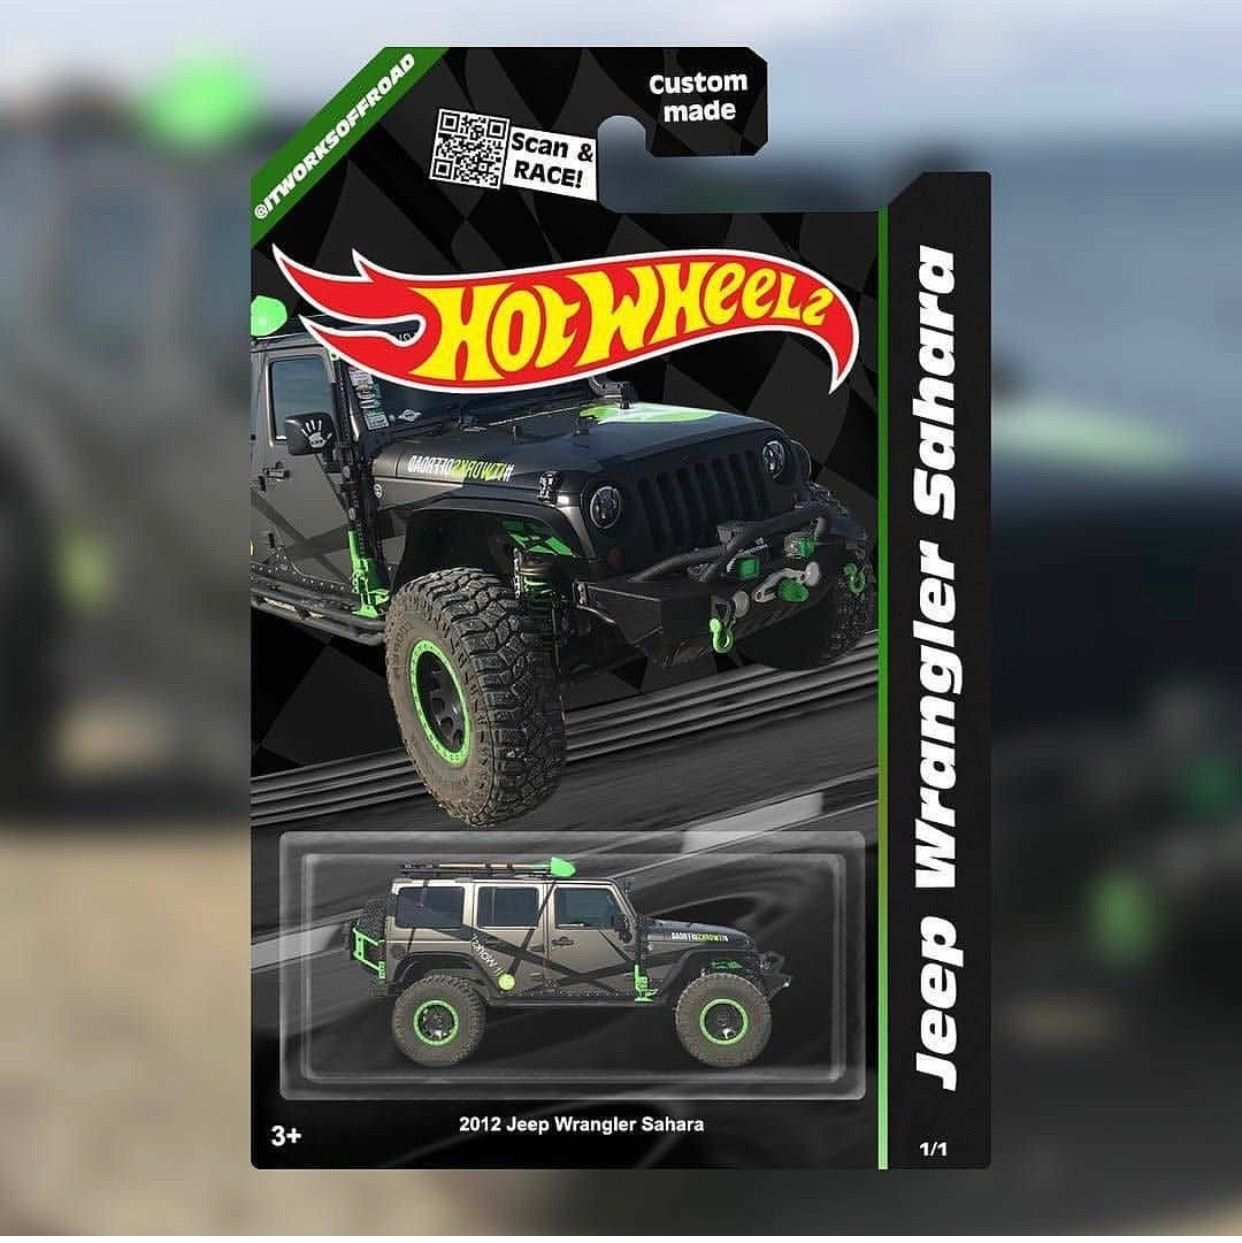 Pin By Kyle Schoessow On Jeep Season All Season Hot Wheels Toys